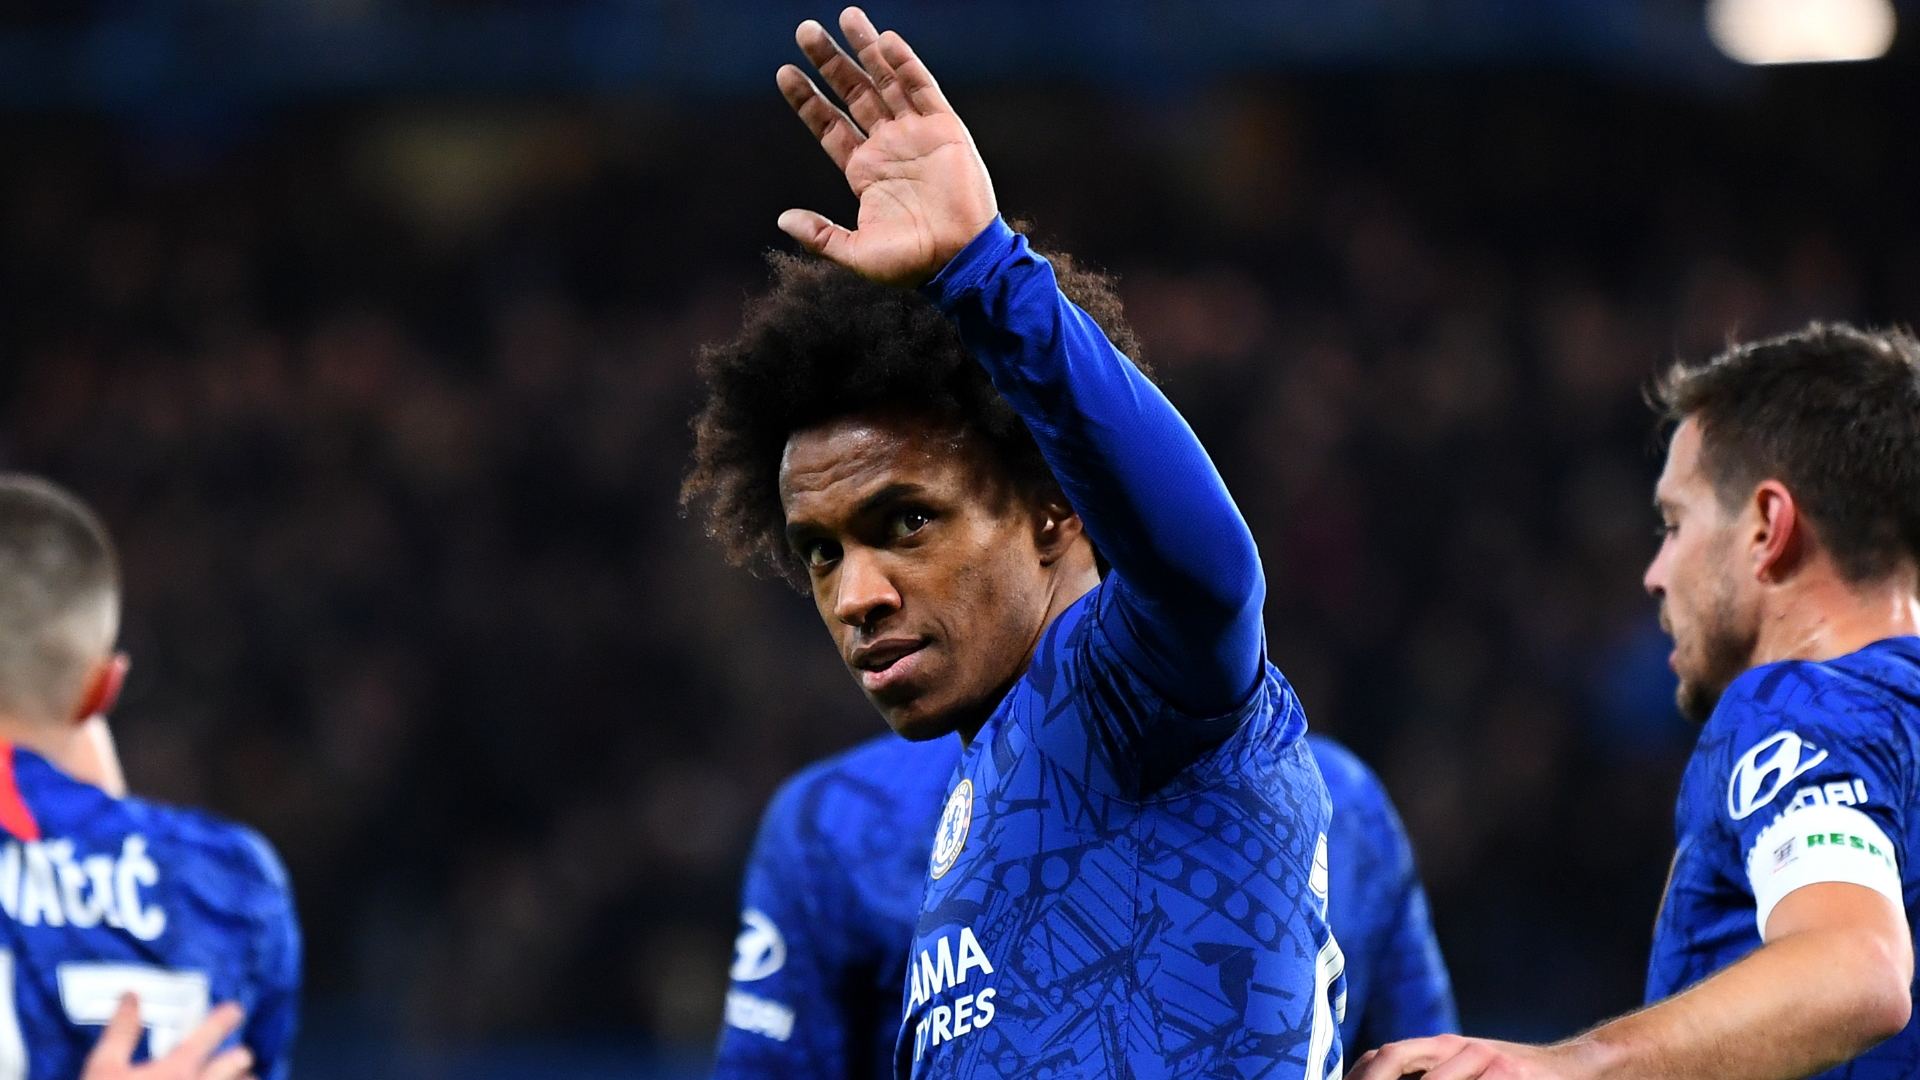 Willian open to temporary Chelsea deal but long-term future remains in doubt